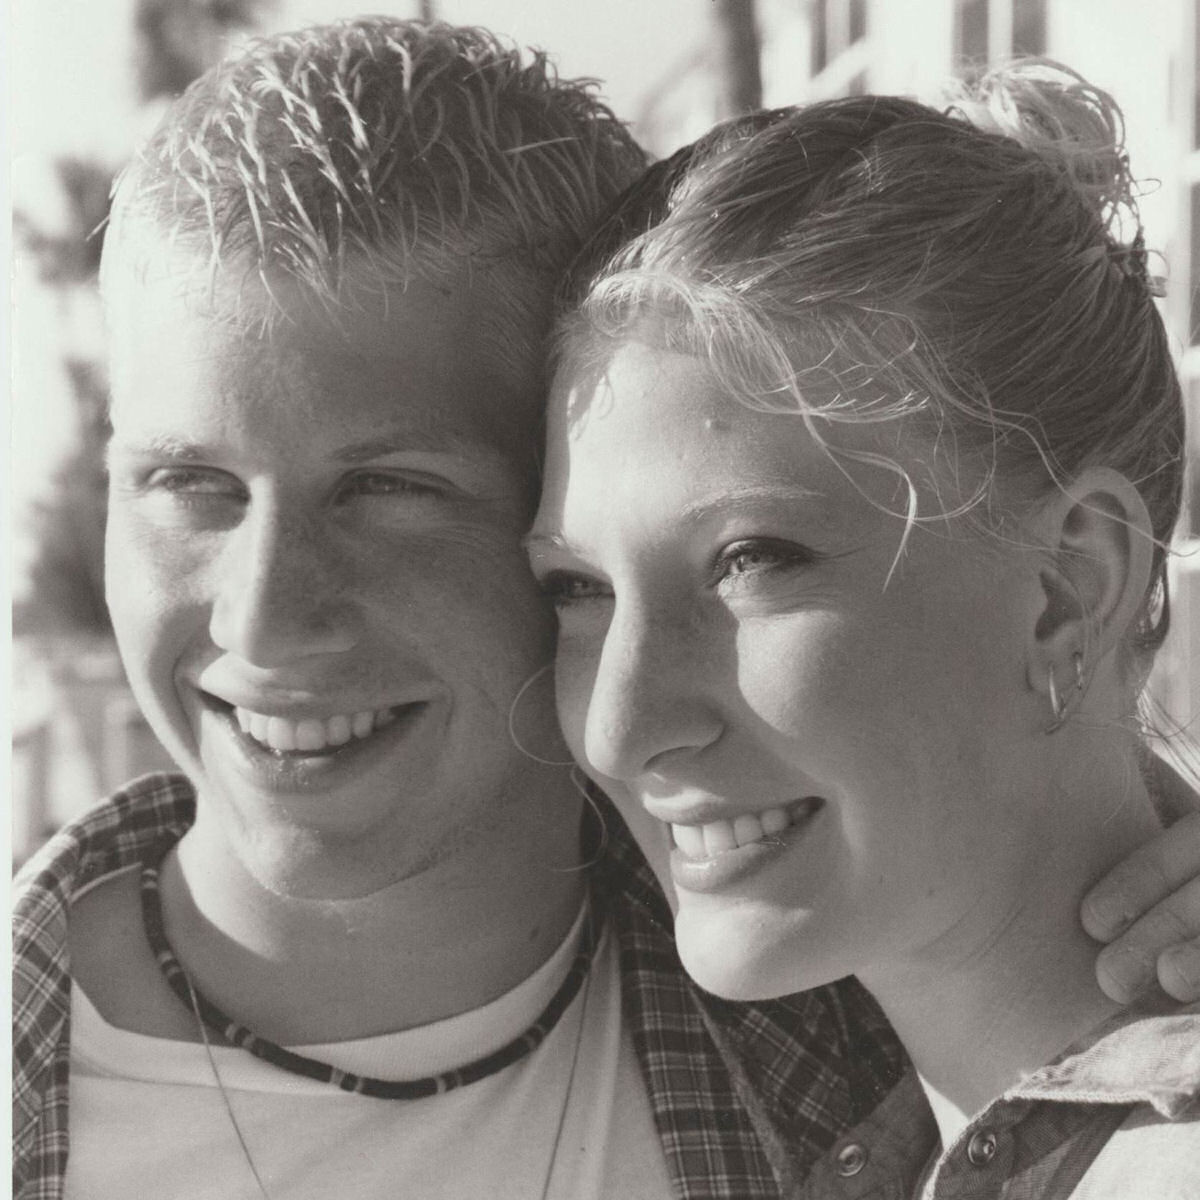 Our engagement photo (January 15,2000)